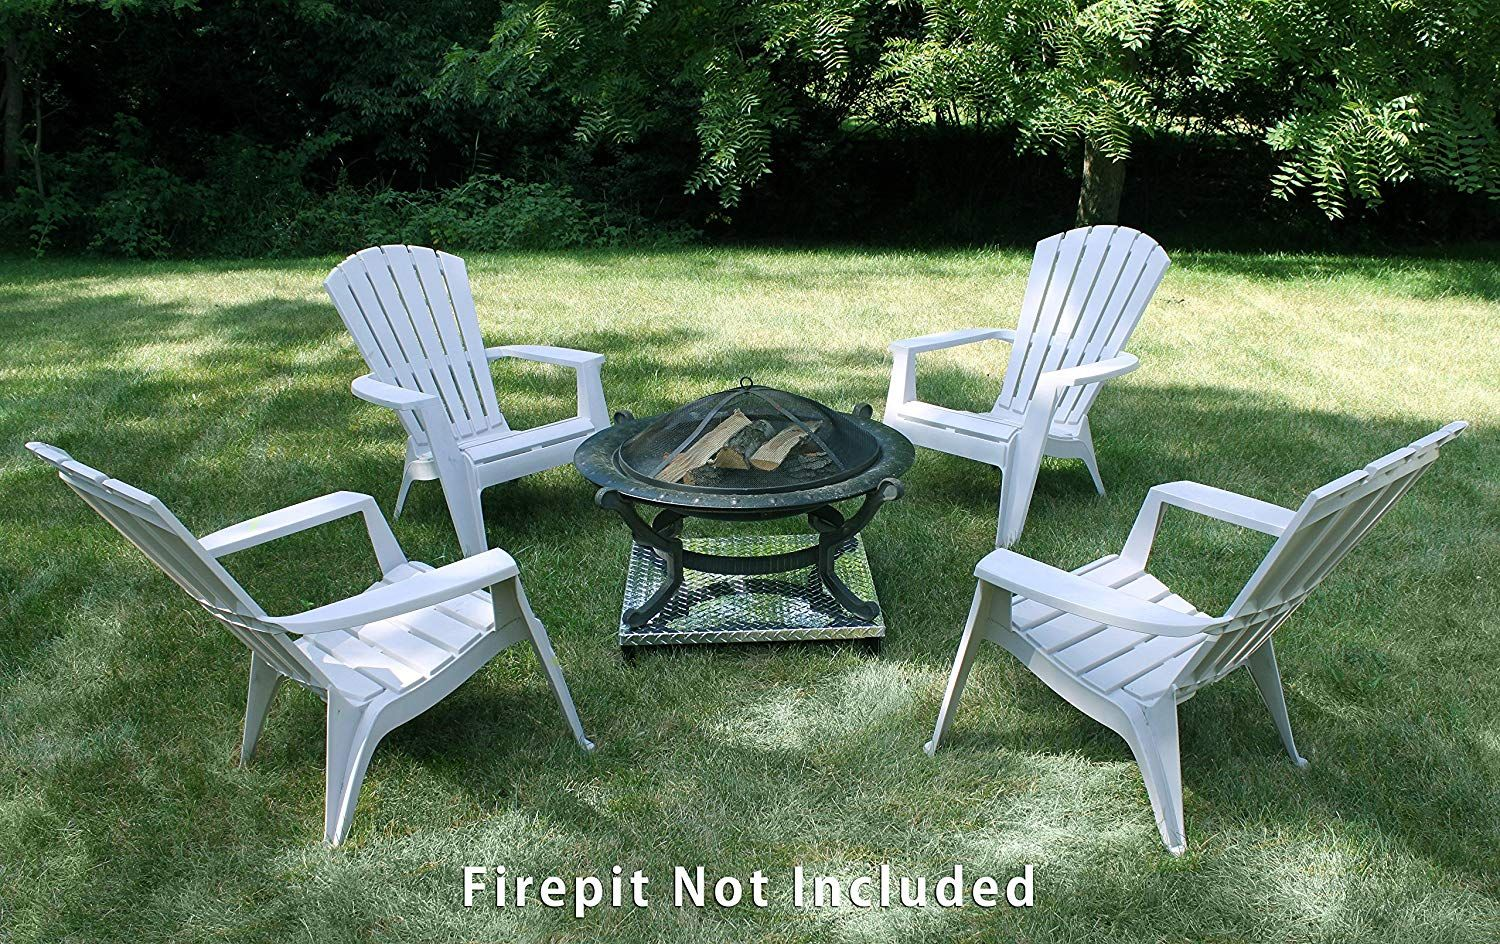 Rain Or Shine We Re Getting Our Packages Out On Time Come Check Us Out At Www Northlandofficeparts Com And On Amazon With Images Wood Burning Fire Pit Fire Pit Northland